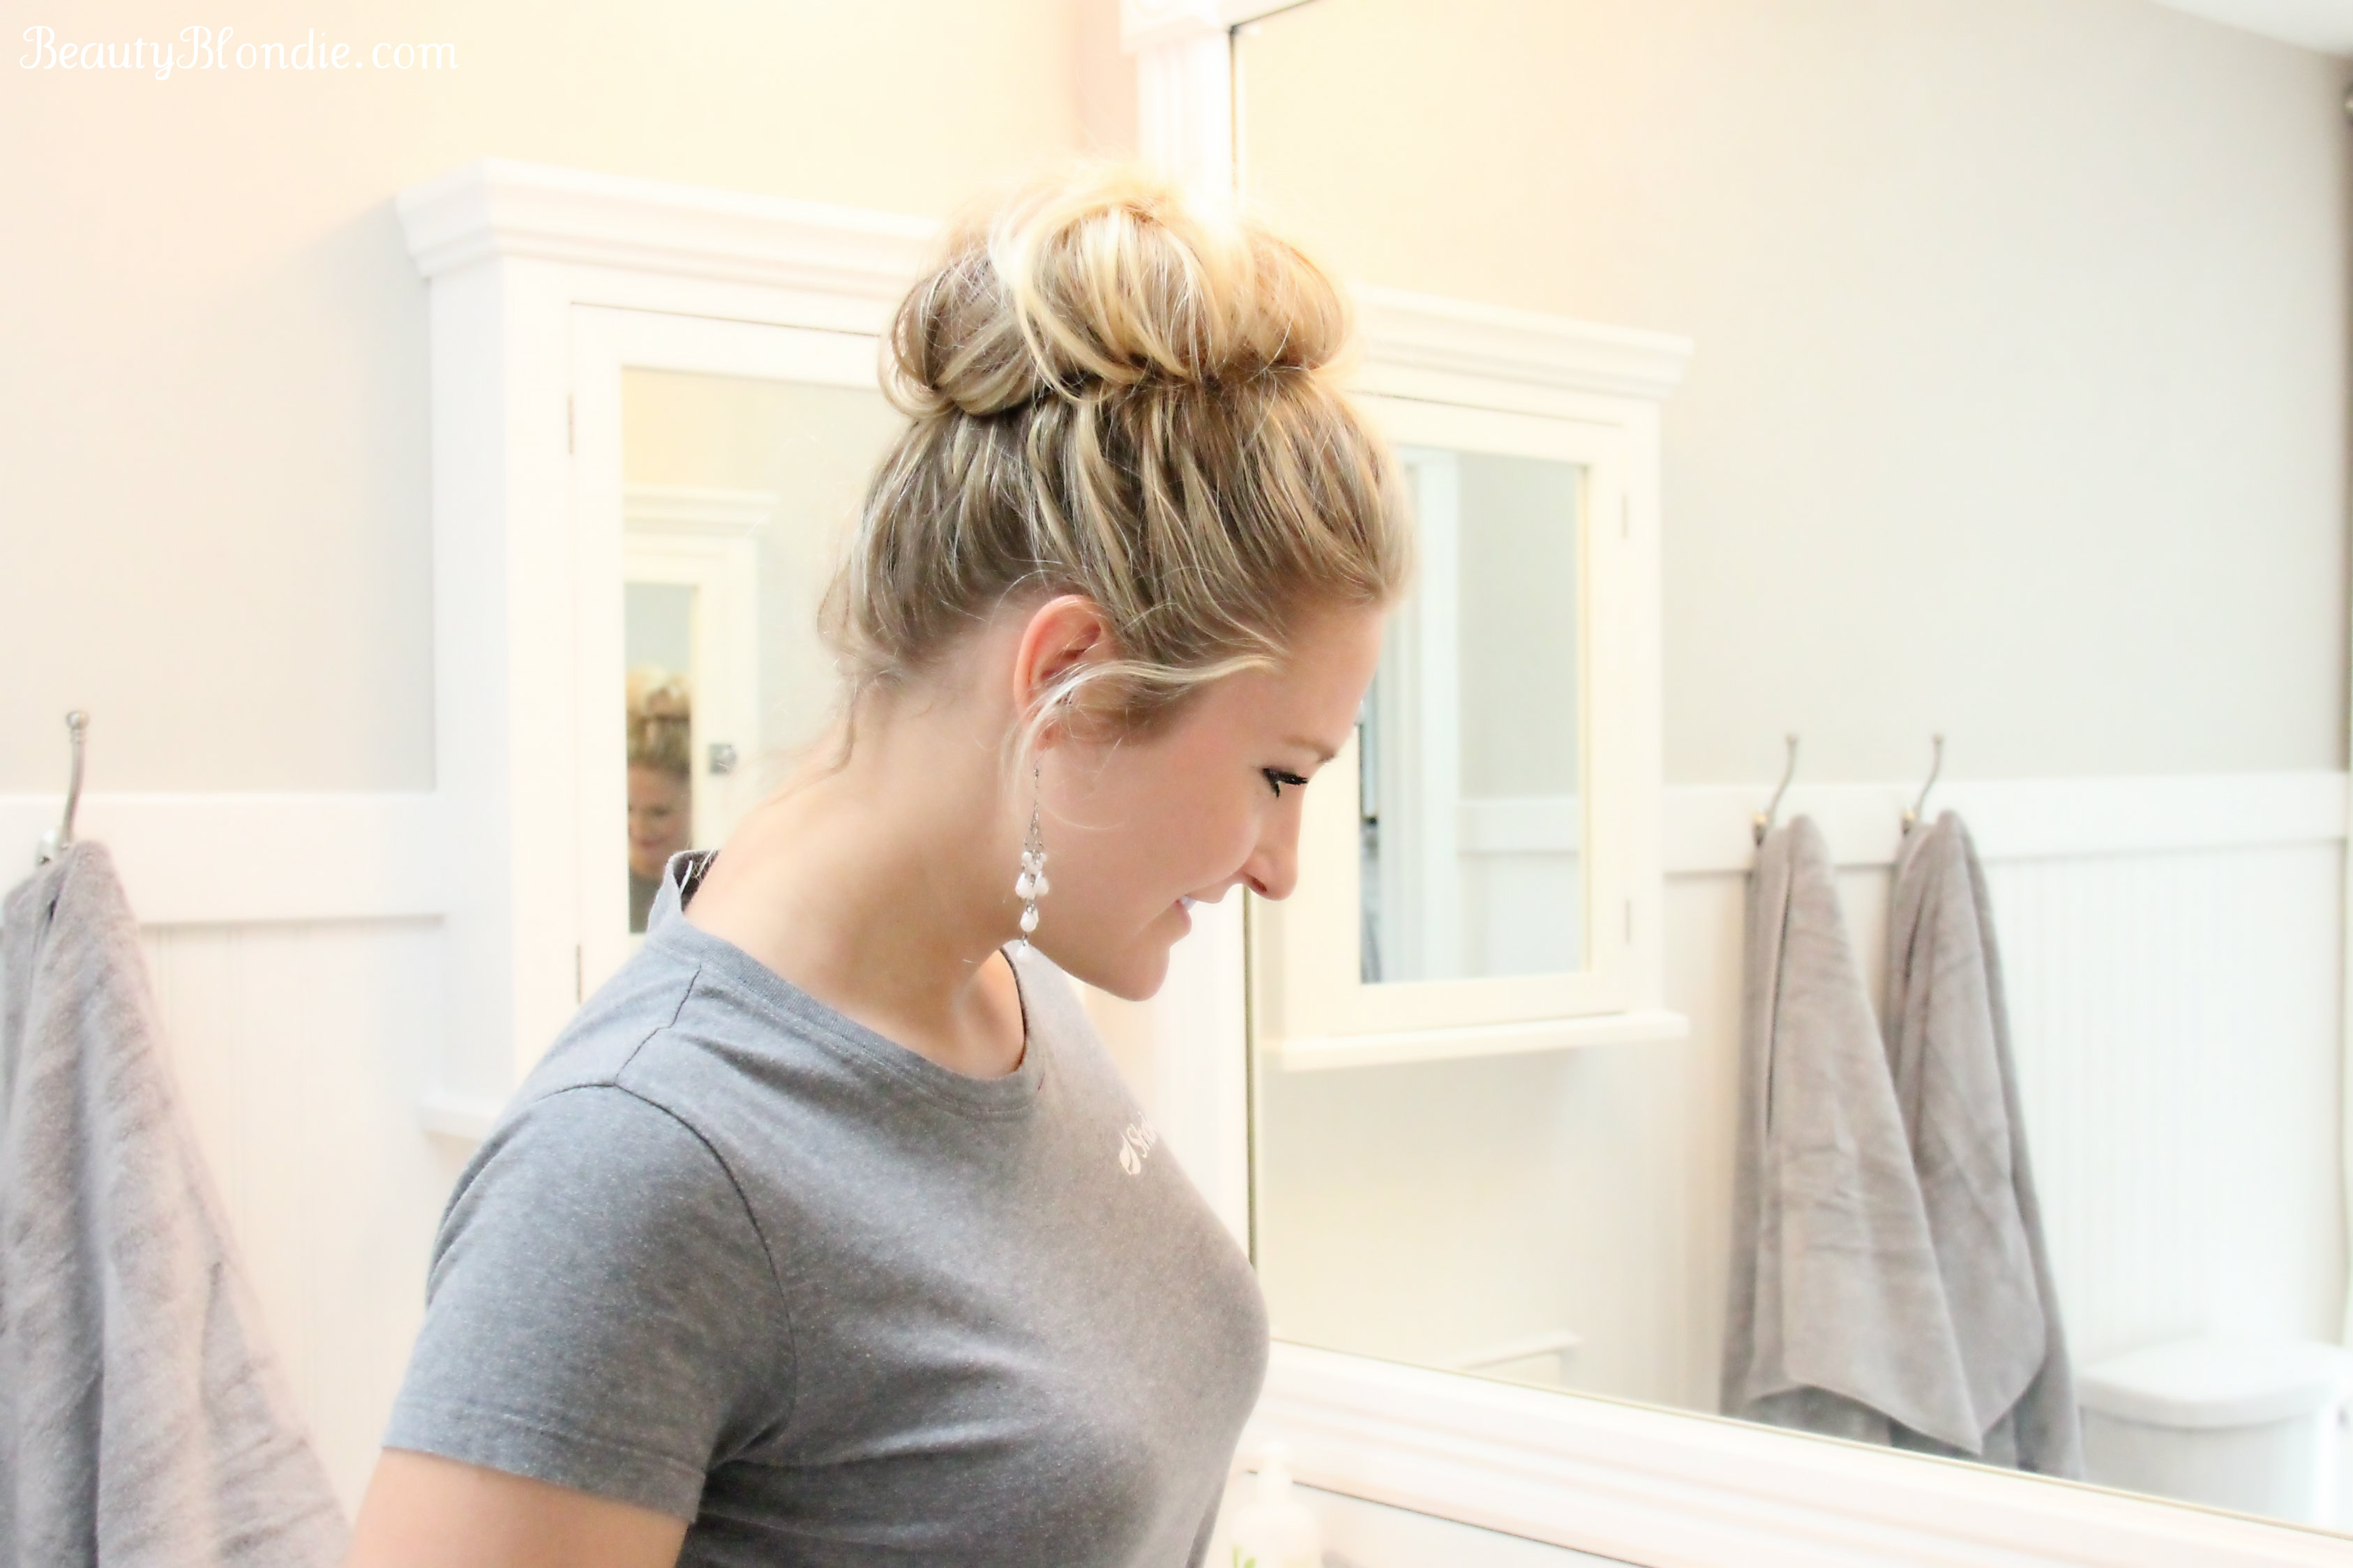 Get your Messy Bun Done in Less than 2 Minutes.